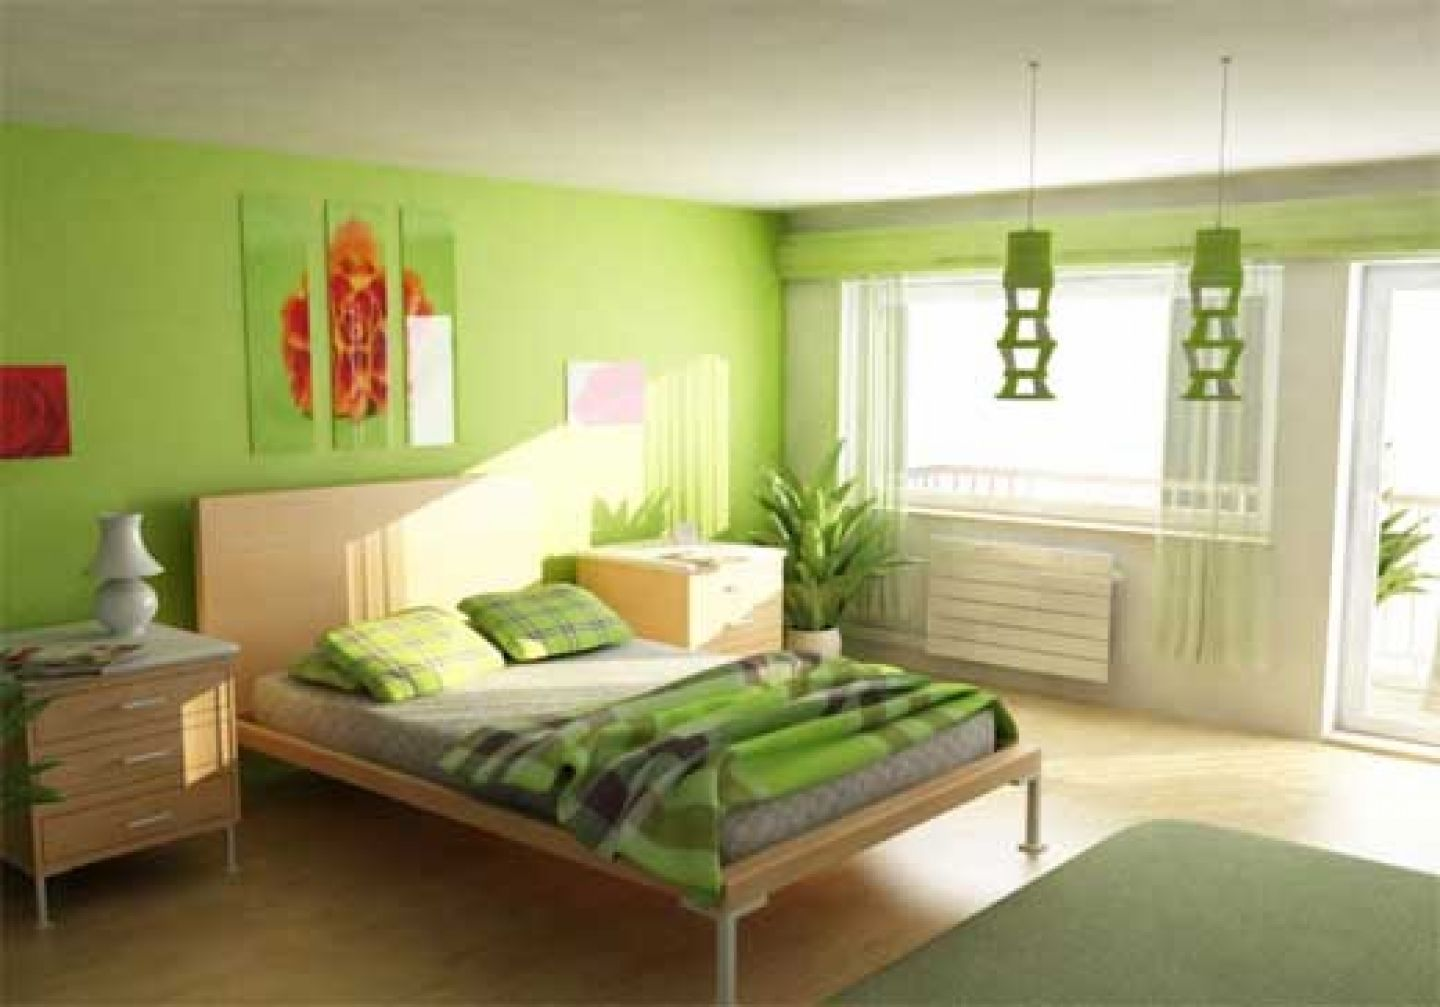 Bedroom Paints Design Simple Incredible Paint Color Ideas For Bedroom Hotshotthemes For Paint Inspiration Design